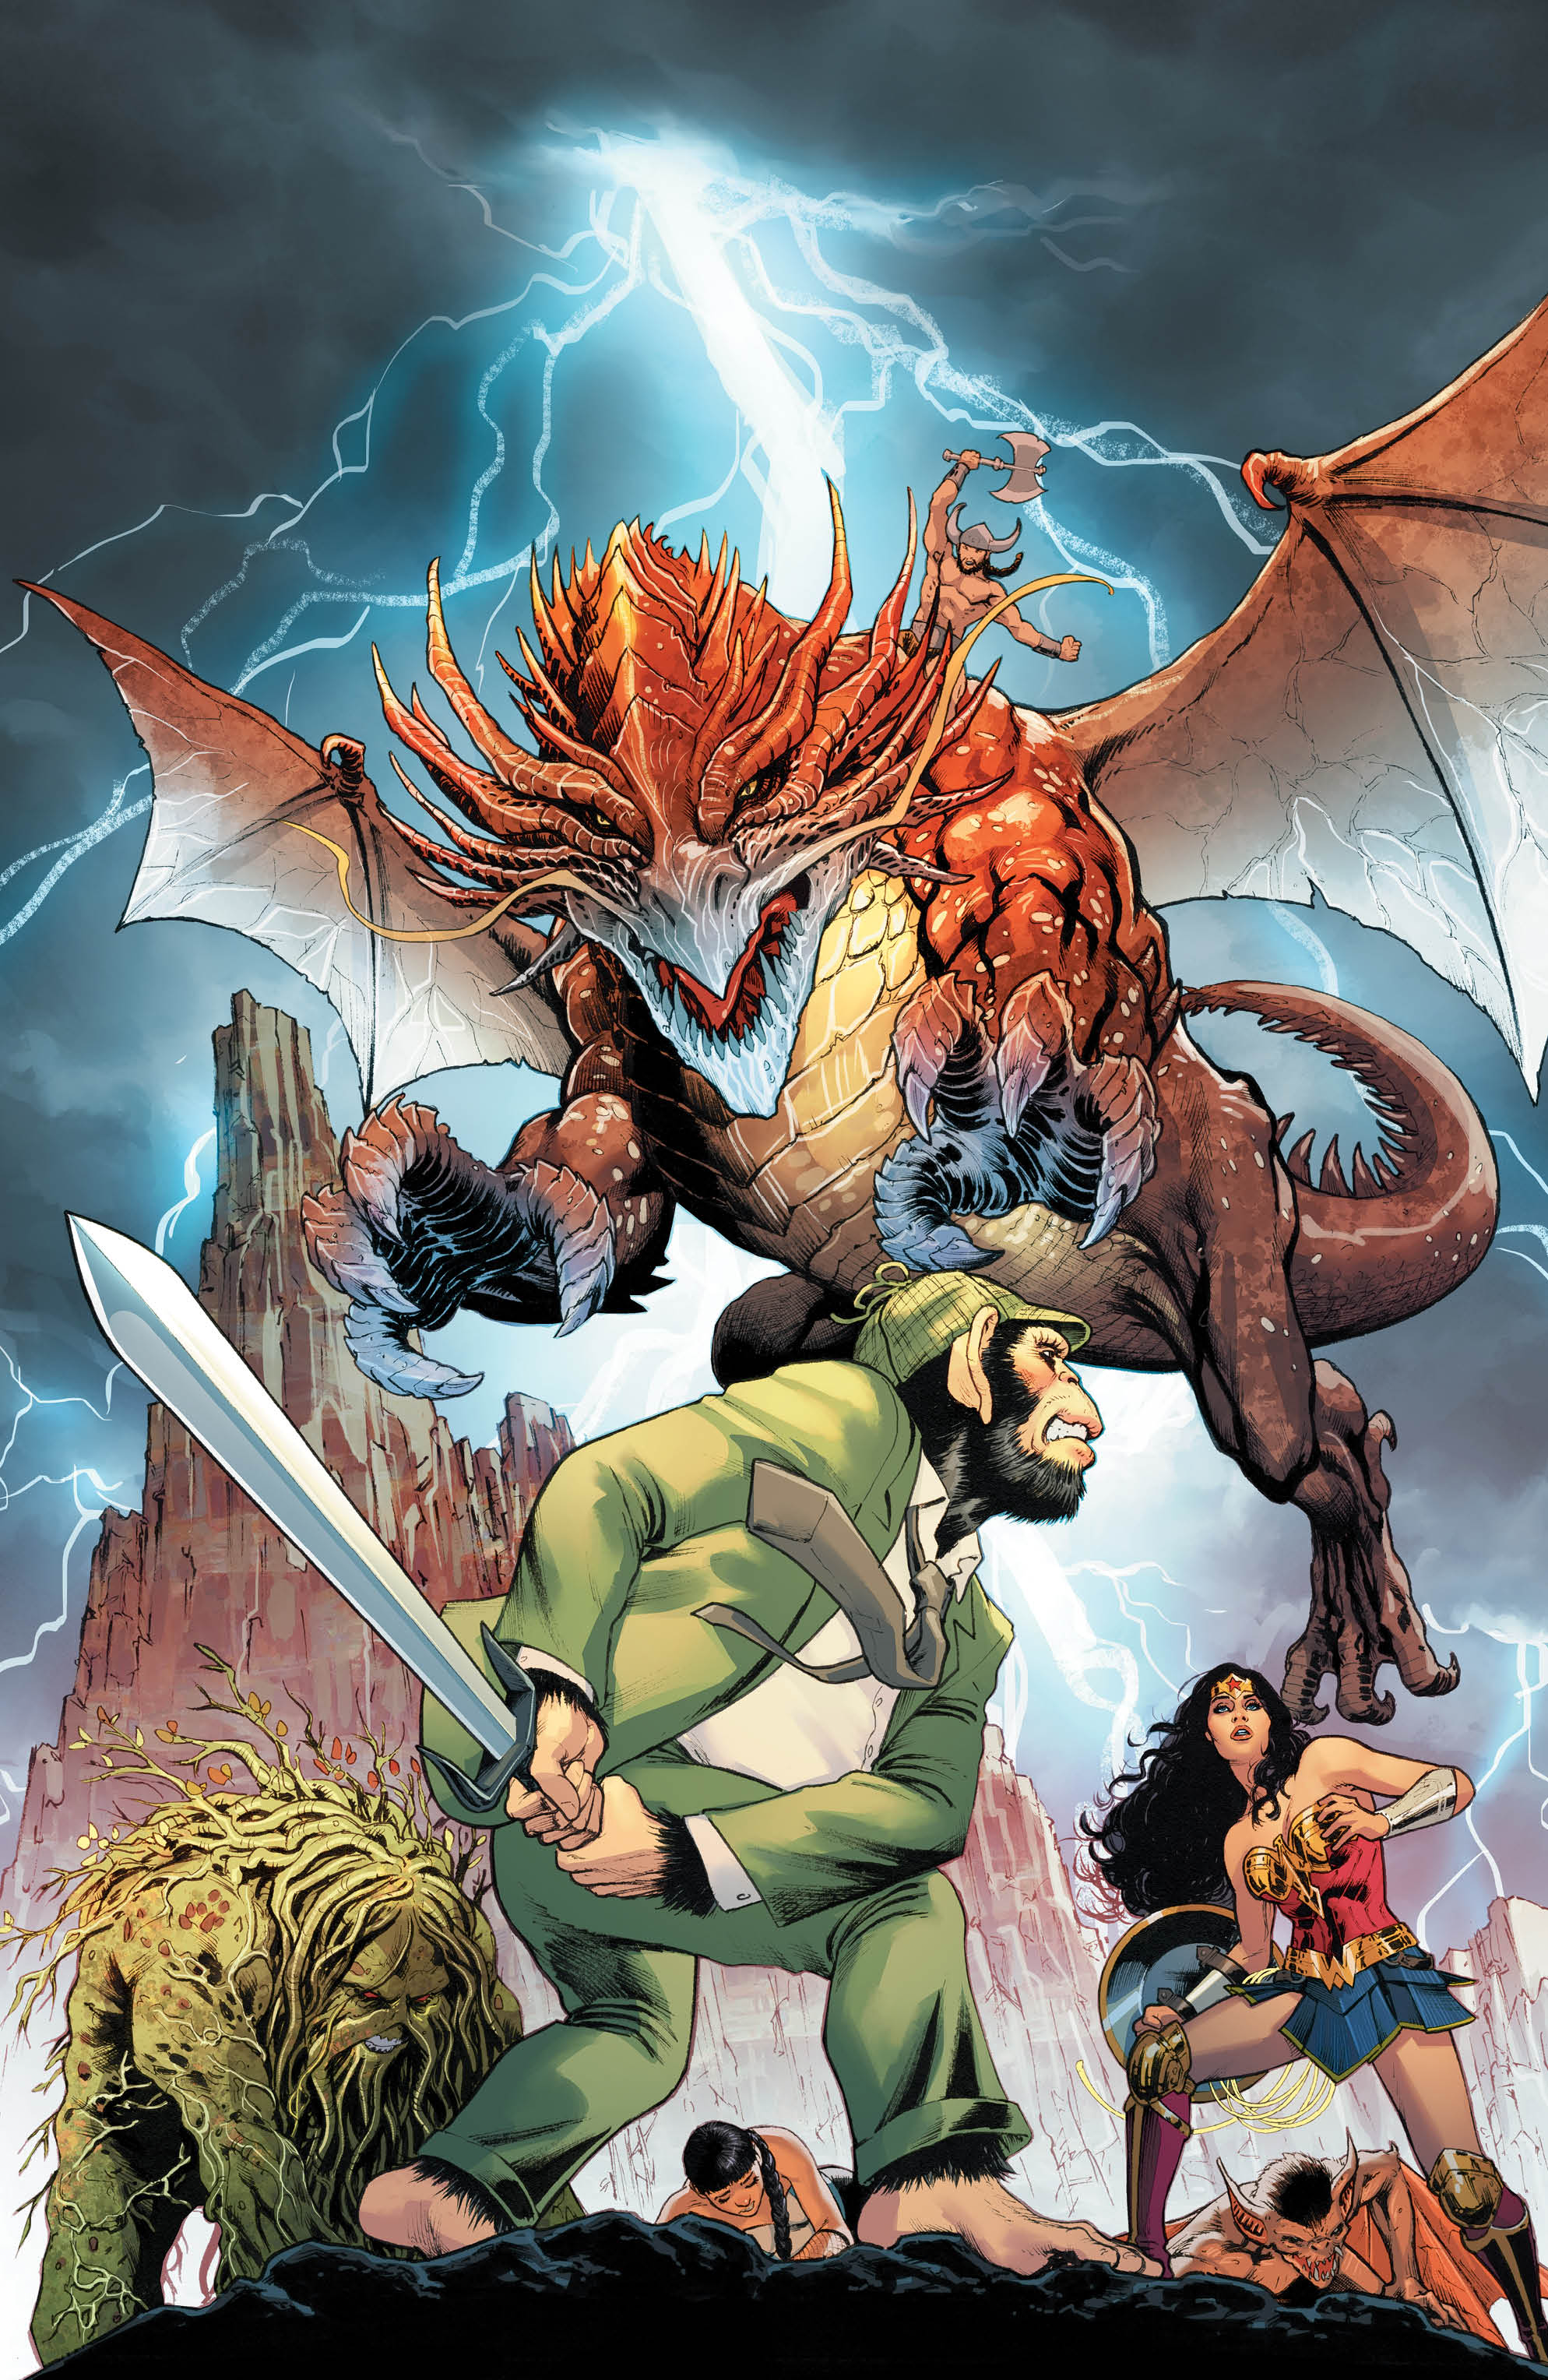 Following the mixed bag of its 'Witching Hour' storyline, Justice League Dark is barreling into the fray of a post magic cataclysm world with eyes on meaningful development for a main cast of characters, ramifications for the world at large, and more grandiose set pieces and twists and turns to come. Does the first issue back to whatever normalcy is for this kooky cast deliver? Mostly! More importantly, though, it remembers to have fun along the way.